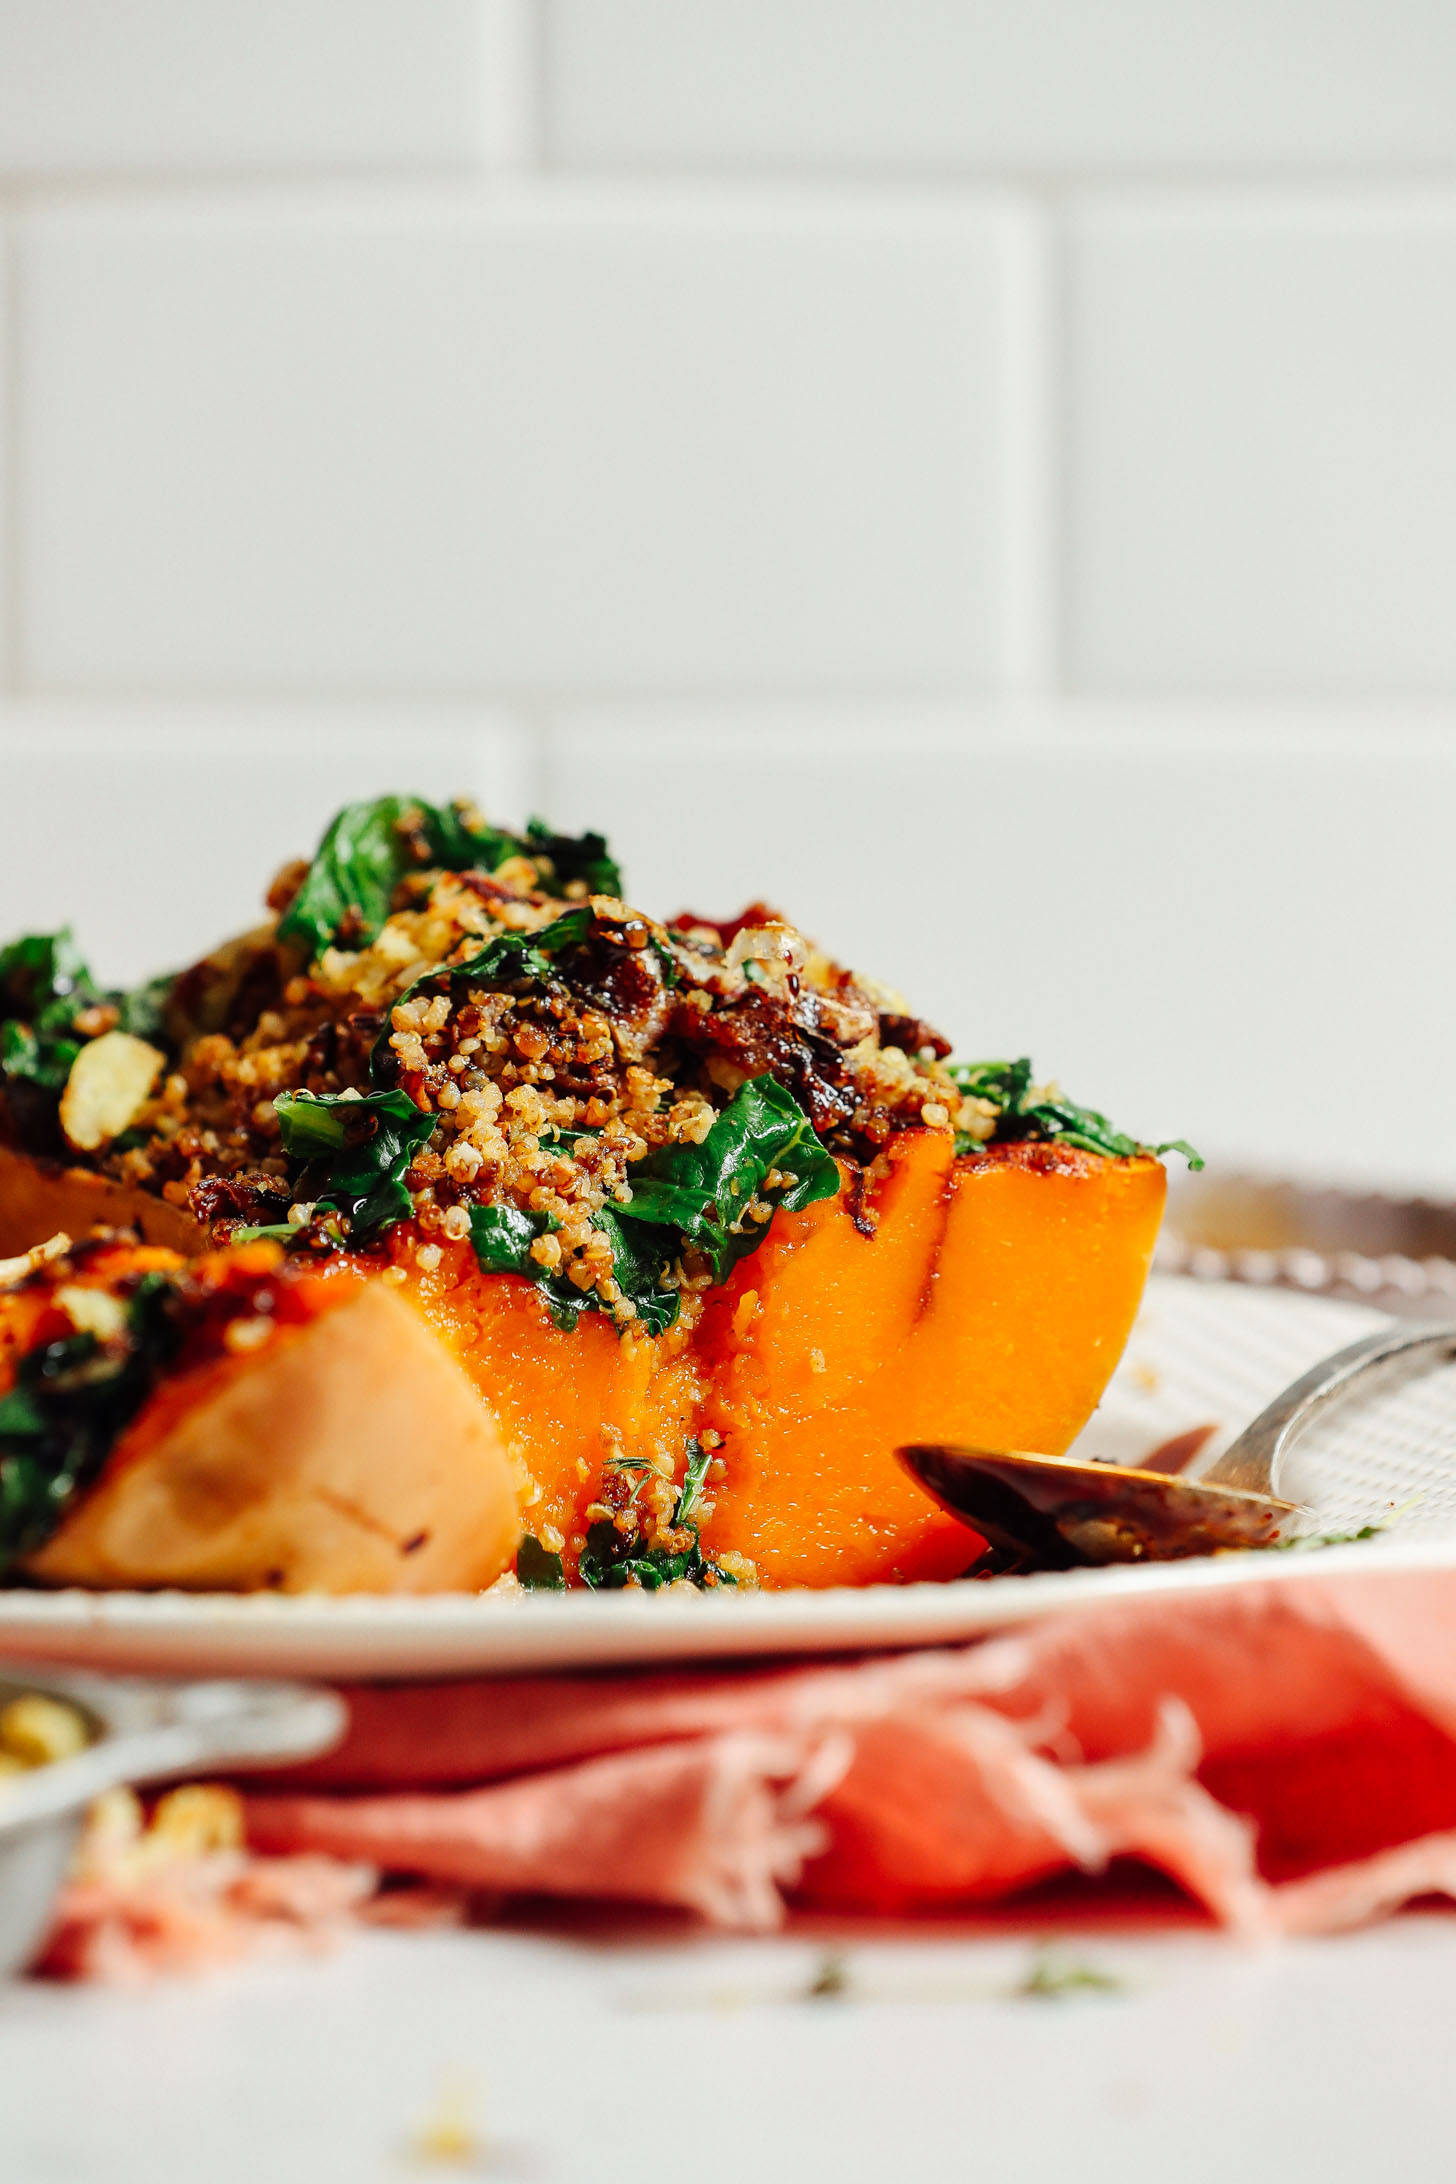 Close up shot of butternut squash stuffed with mushrooms, kale, and quinoa